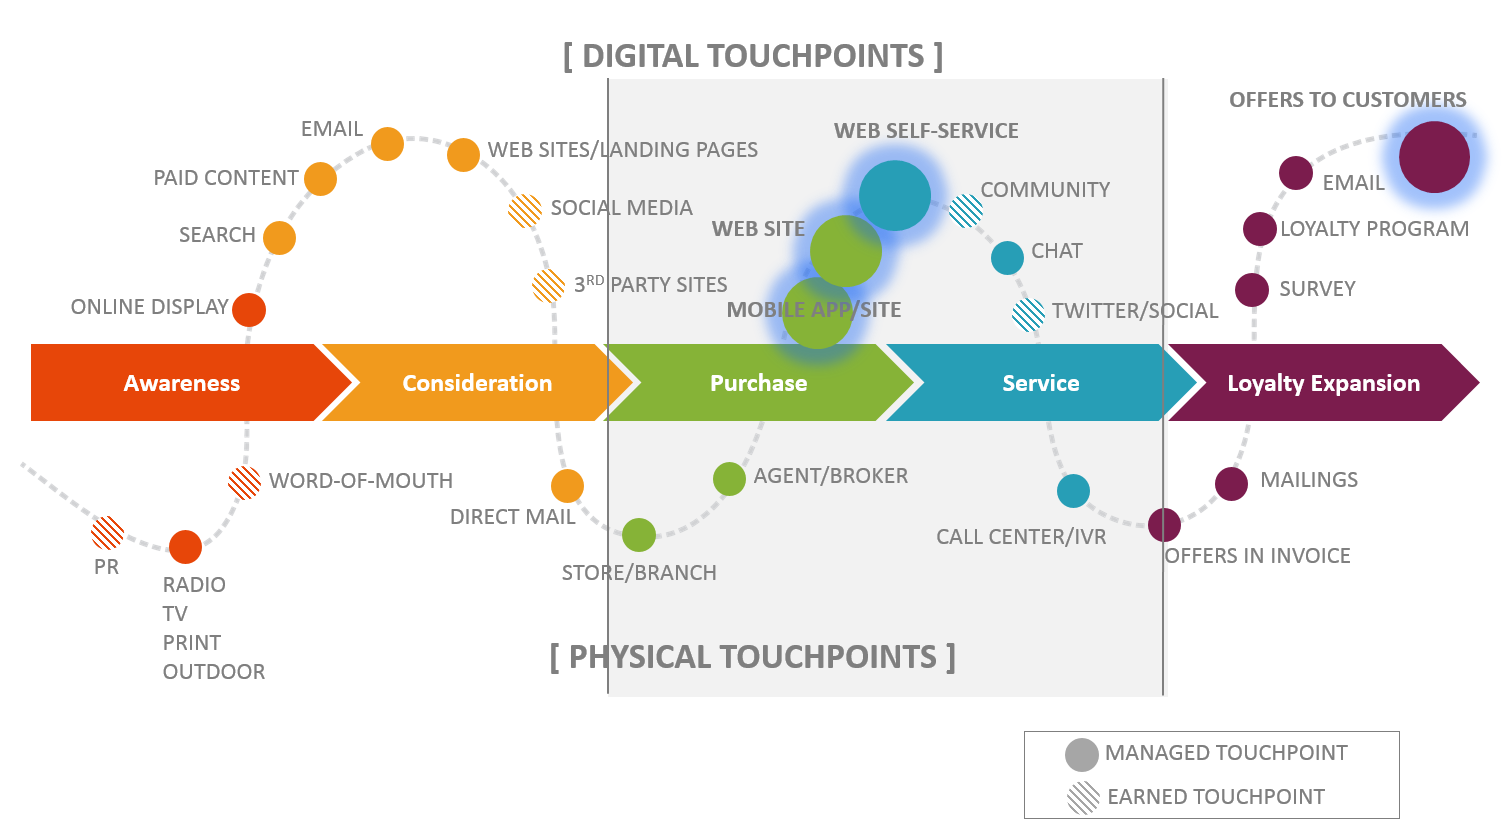 sage 3 digital-touchpoints